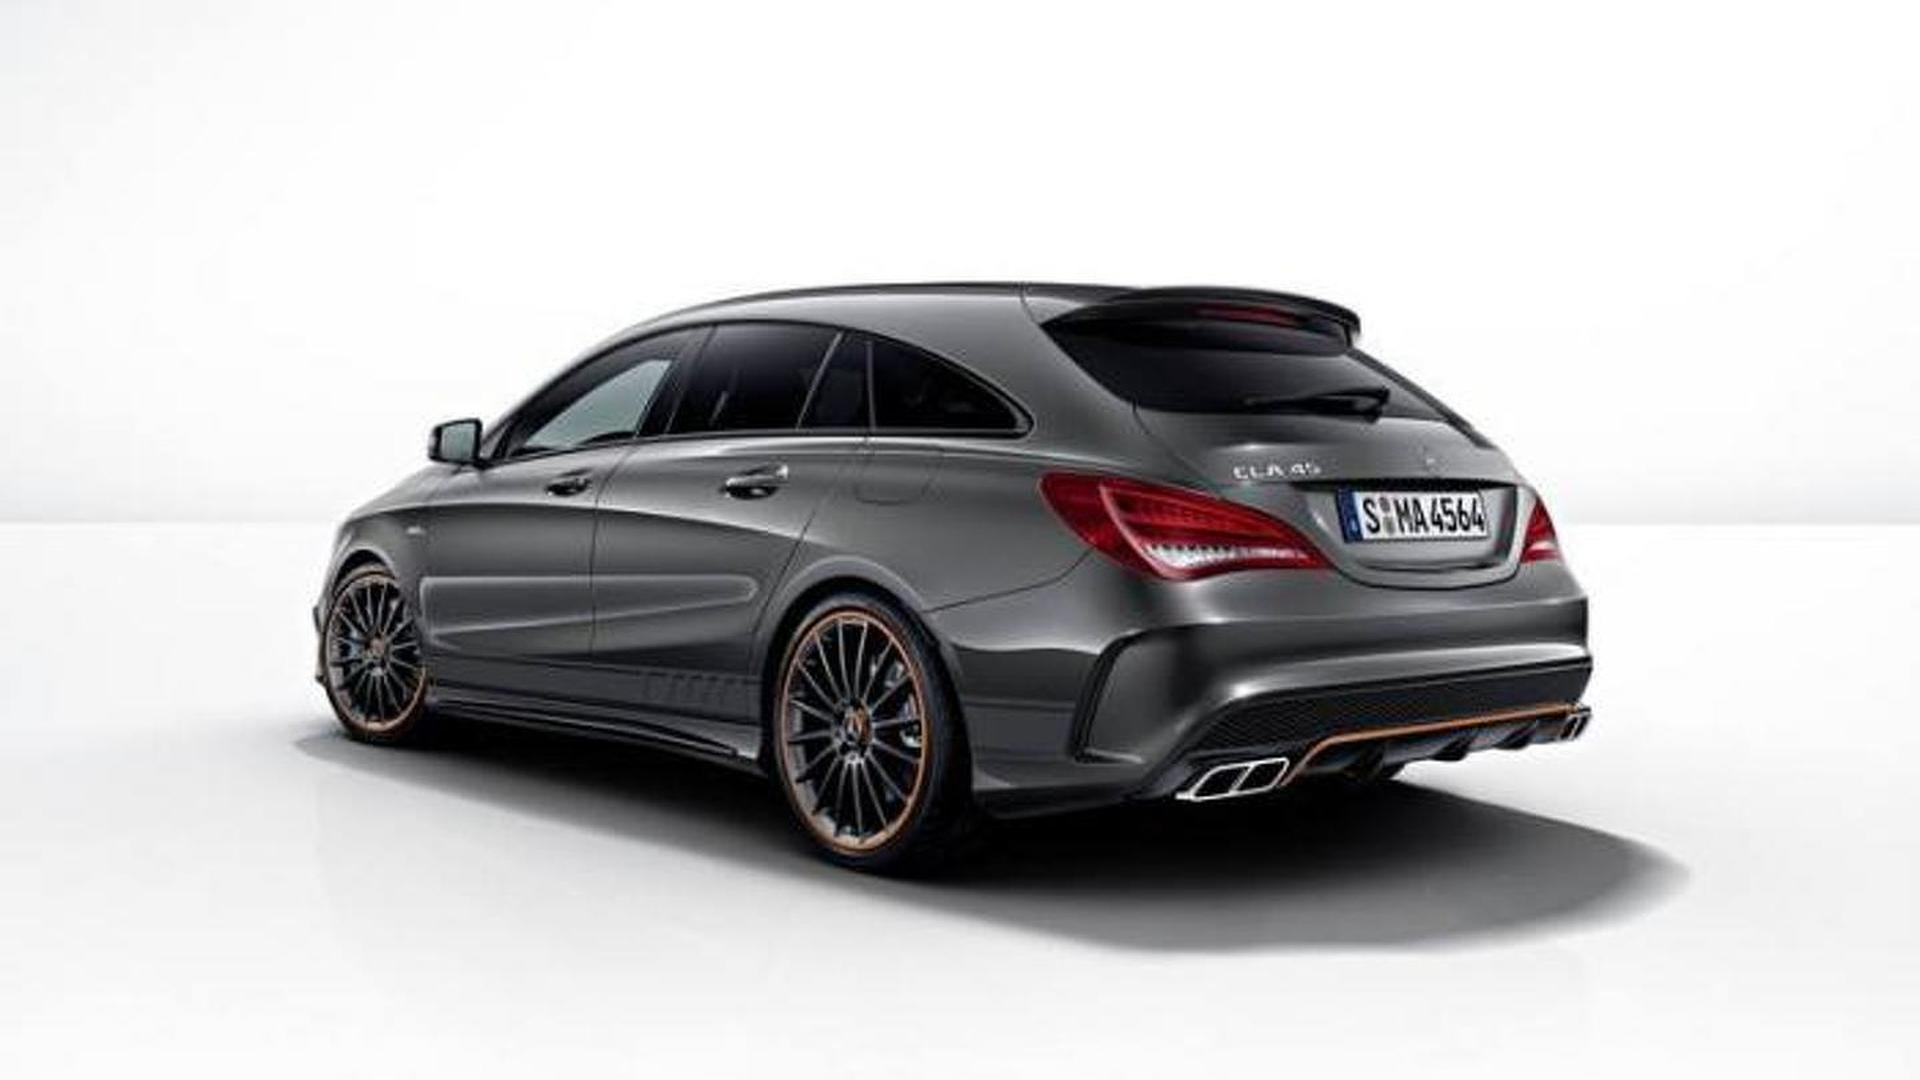 https://icdn-8.motor1.com/images/mgl/mPj7q/s1/2014-527705-mercedes-benz-cla-45-amg-shooting-brake-orangeart-edition1.jpg